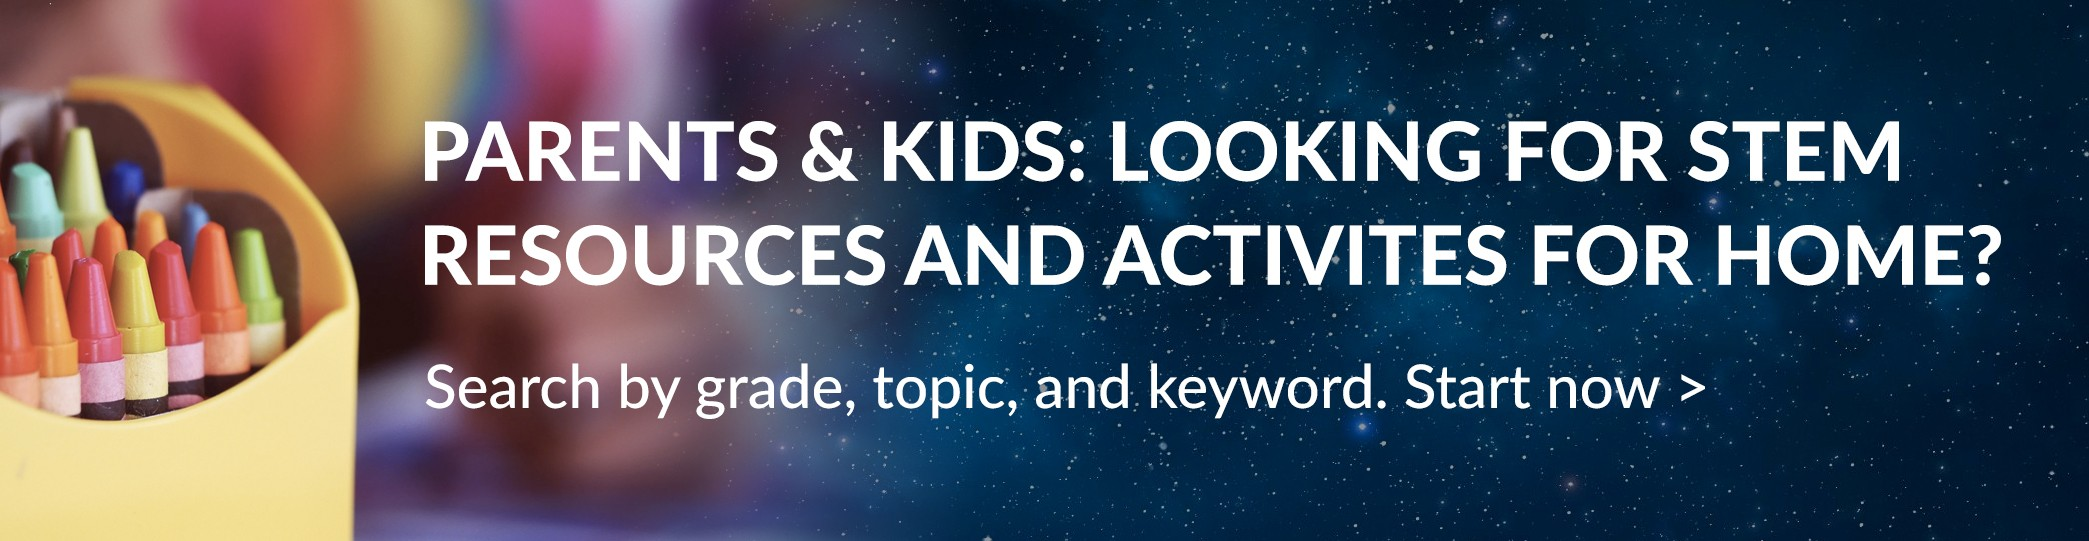 Parents & Kids: looking for STEM resources and activities for home? Search by grade, topic, and keyword. Start now >